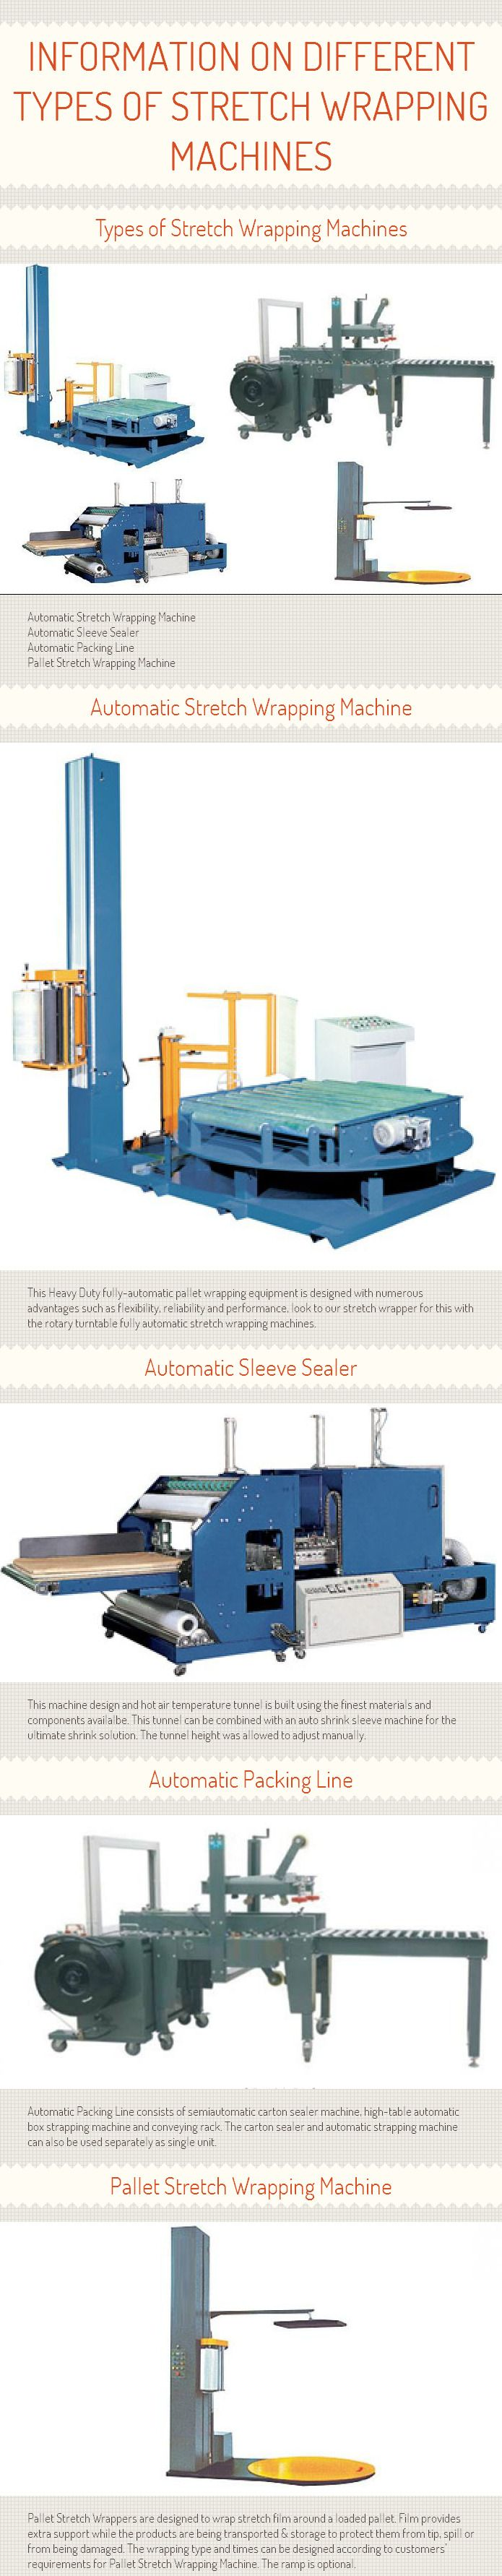 Know about the various types of stretch wrapping machines including automatic stretch wrapping machine, automatic sleeve sealer, automatic packing line and pallet stretch wrapping machine from this infograph., kindly visit - http://www.multipackmachinery.com/stretch-wrapping-machine/  This Infograph has been sourced from - http://www.multipackmachinery.com/information-on-different-types-of-stretch-wrapping-machines-infograph/